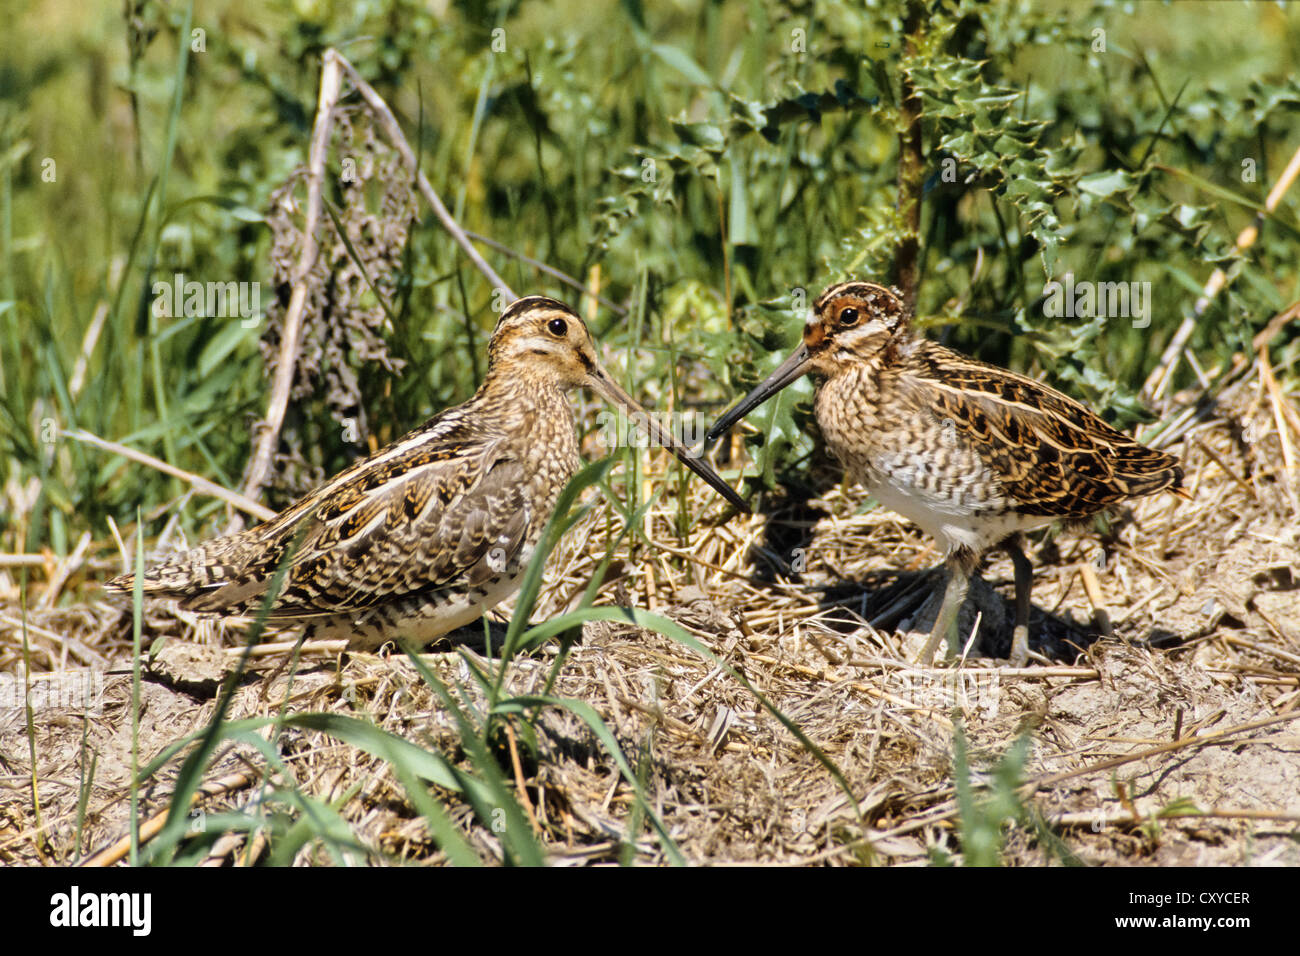 Common Snipe (Gallinago) with young birds, Bird of the Year 2013 - Stock Image